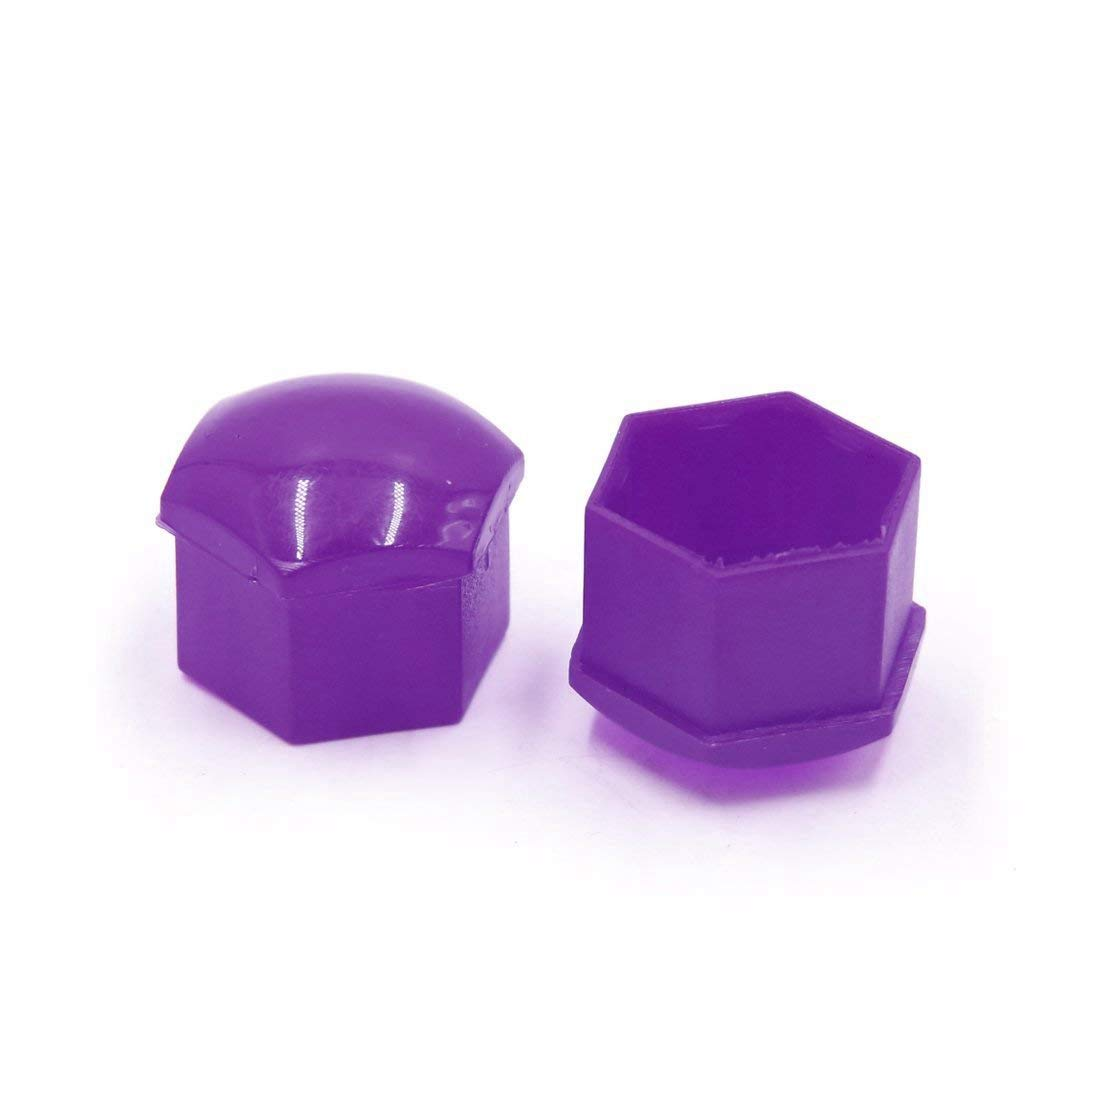 TOOGOO 20 pcs Purple Plastic Wheel Lug Nut Bolt Cover Cap with Removal Tool for Car,19mm by TOOGOO (Image #6)